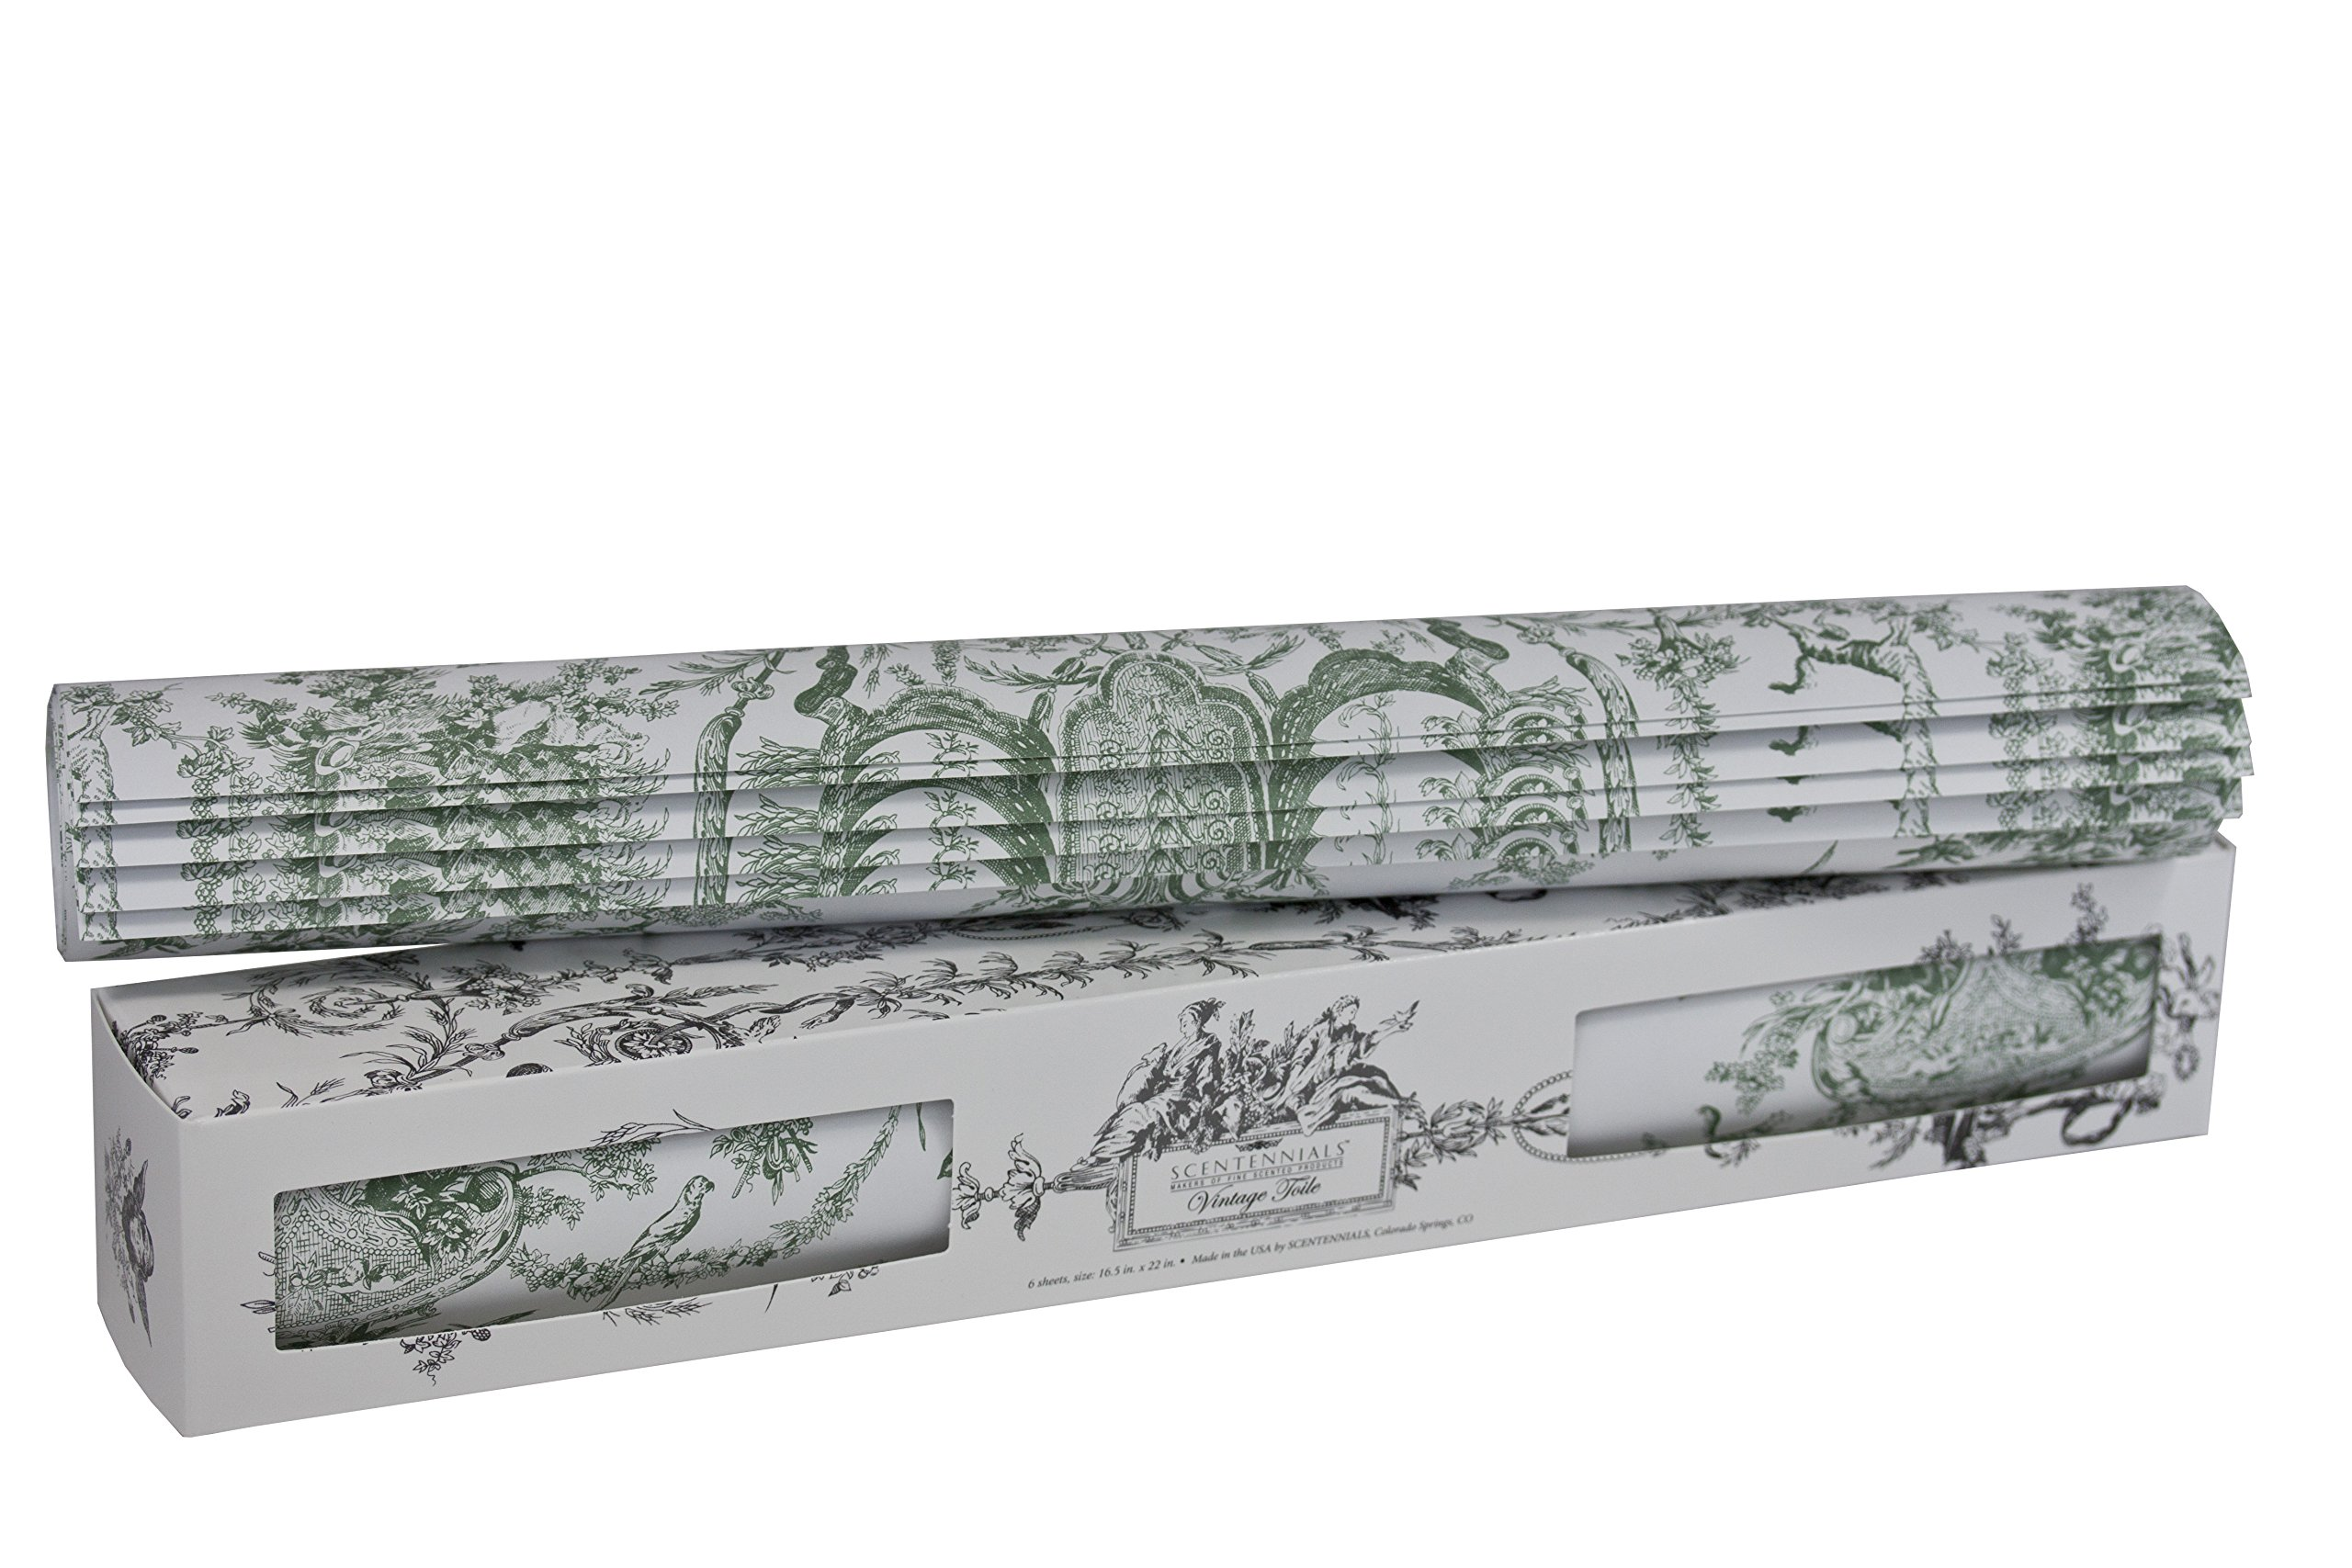 Scentennials VINTAGE TOILE GREEN (6 SHEETS) Scented Fragrant Shelf & Drawer Liners 16.5'' x 22'' - Great for Dresser, Kitchen, Bathroom, Vanity & Linen Closet by Scentennials Scented Drawer Liners